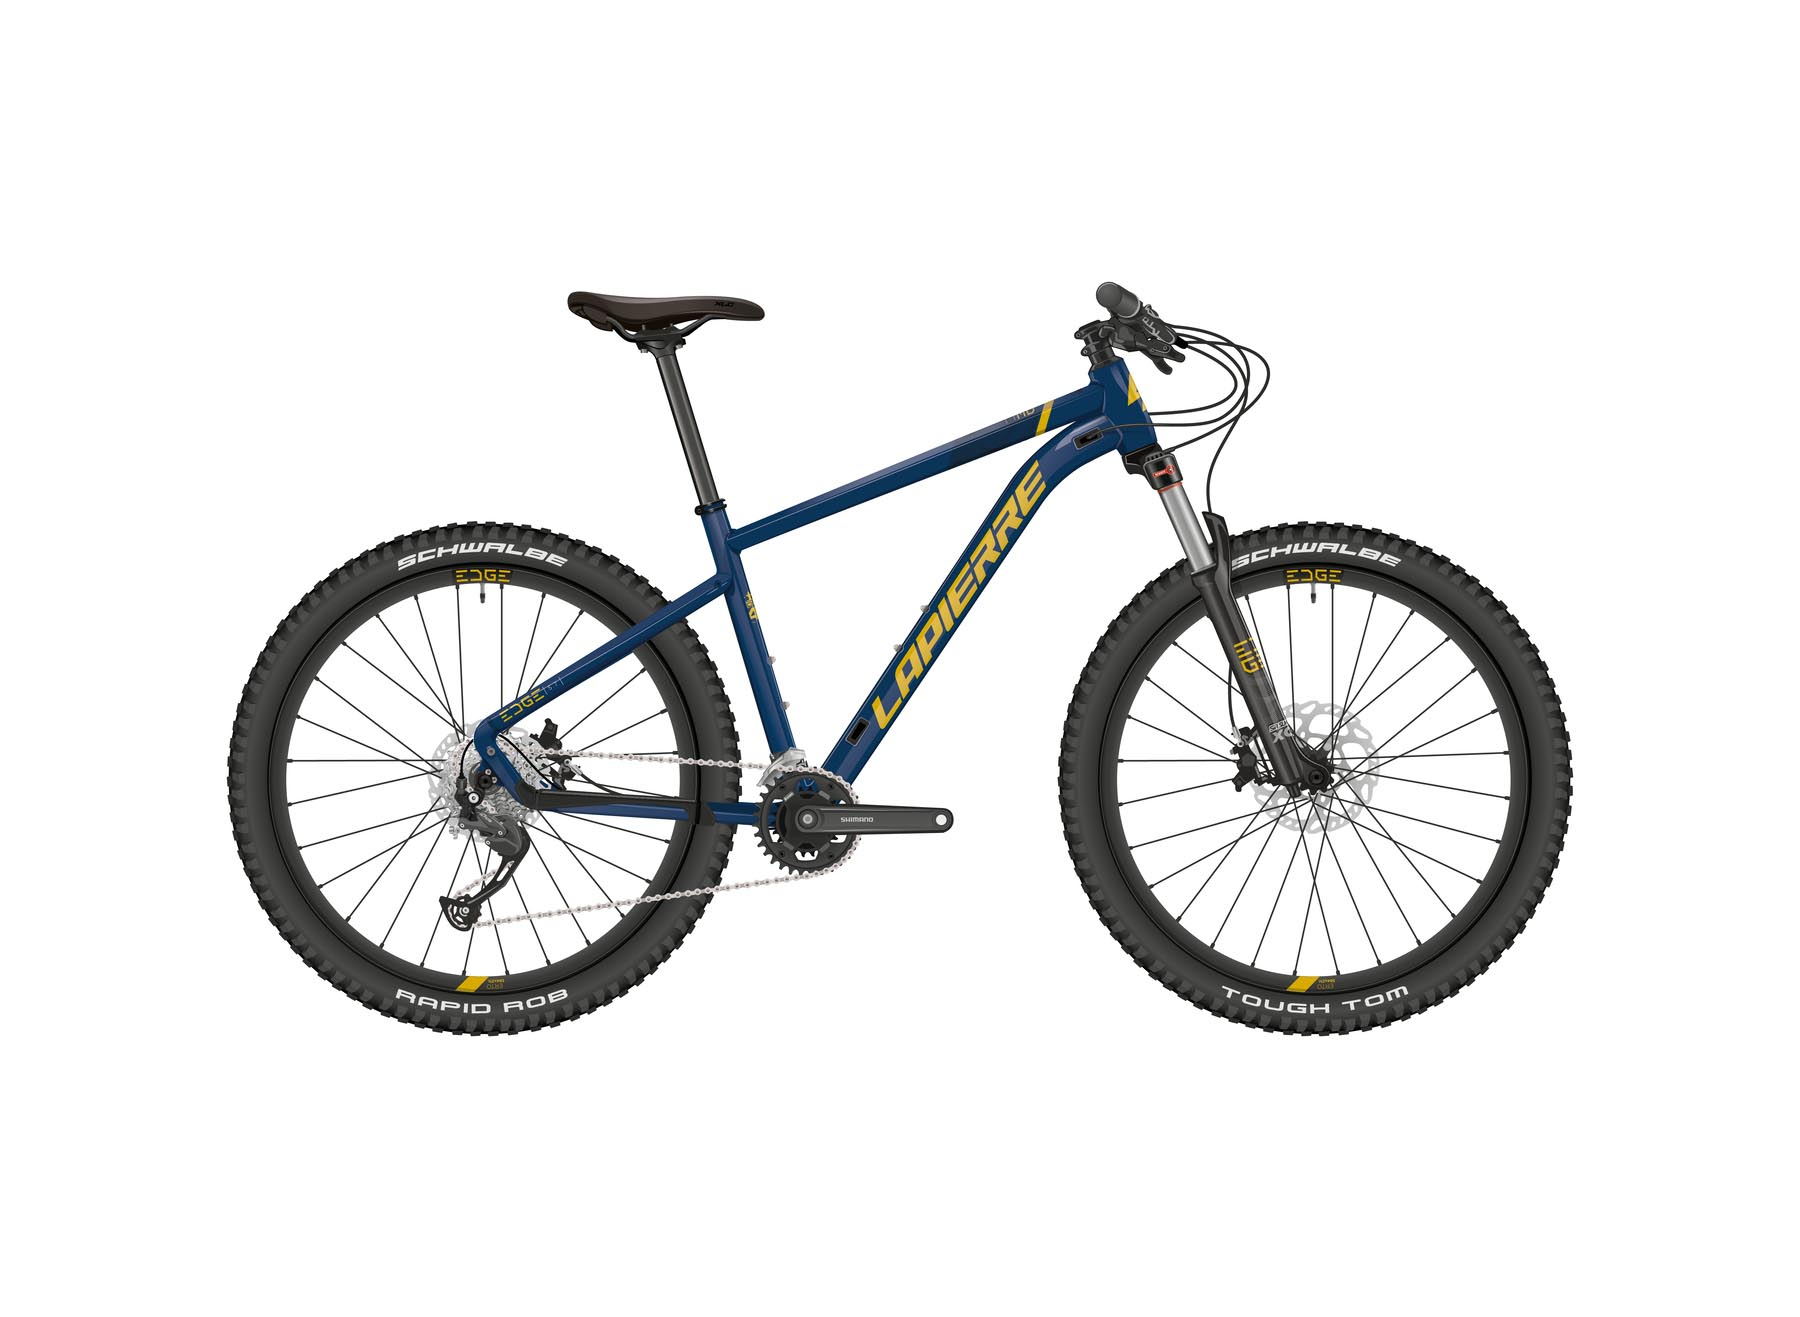 Lapierre Edge 5.7 2021 Mountain Bike